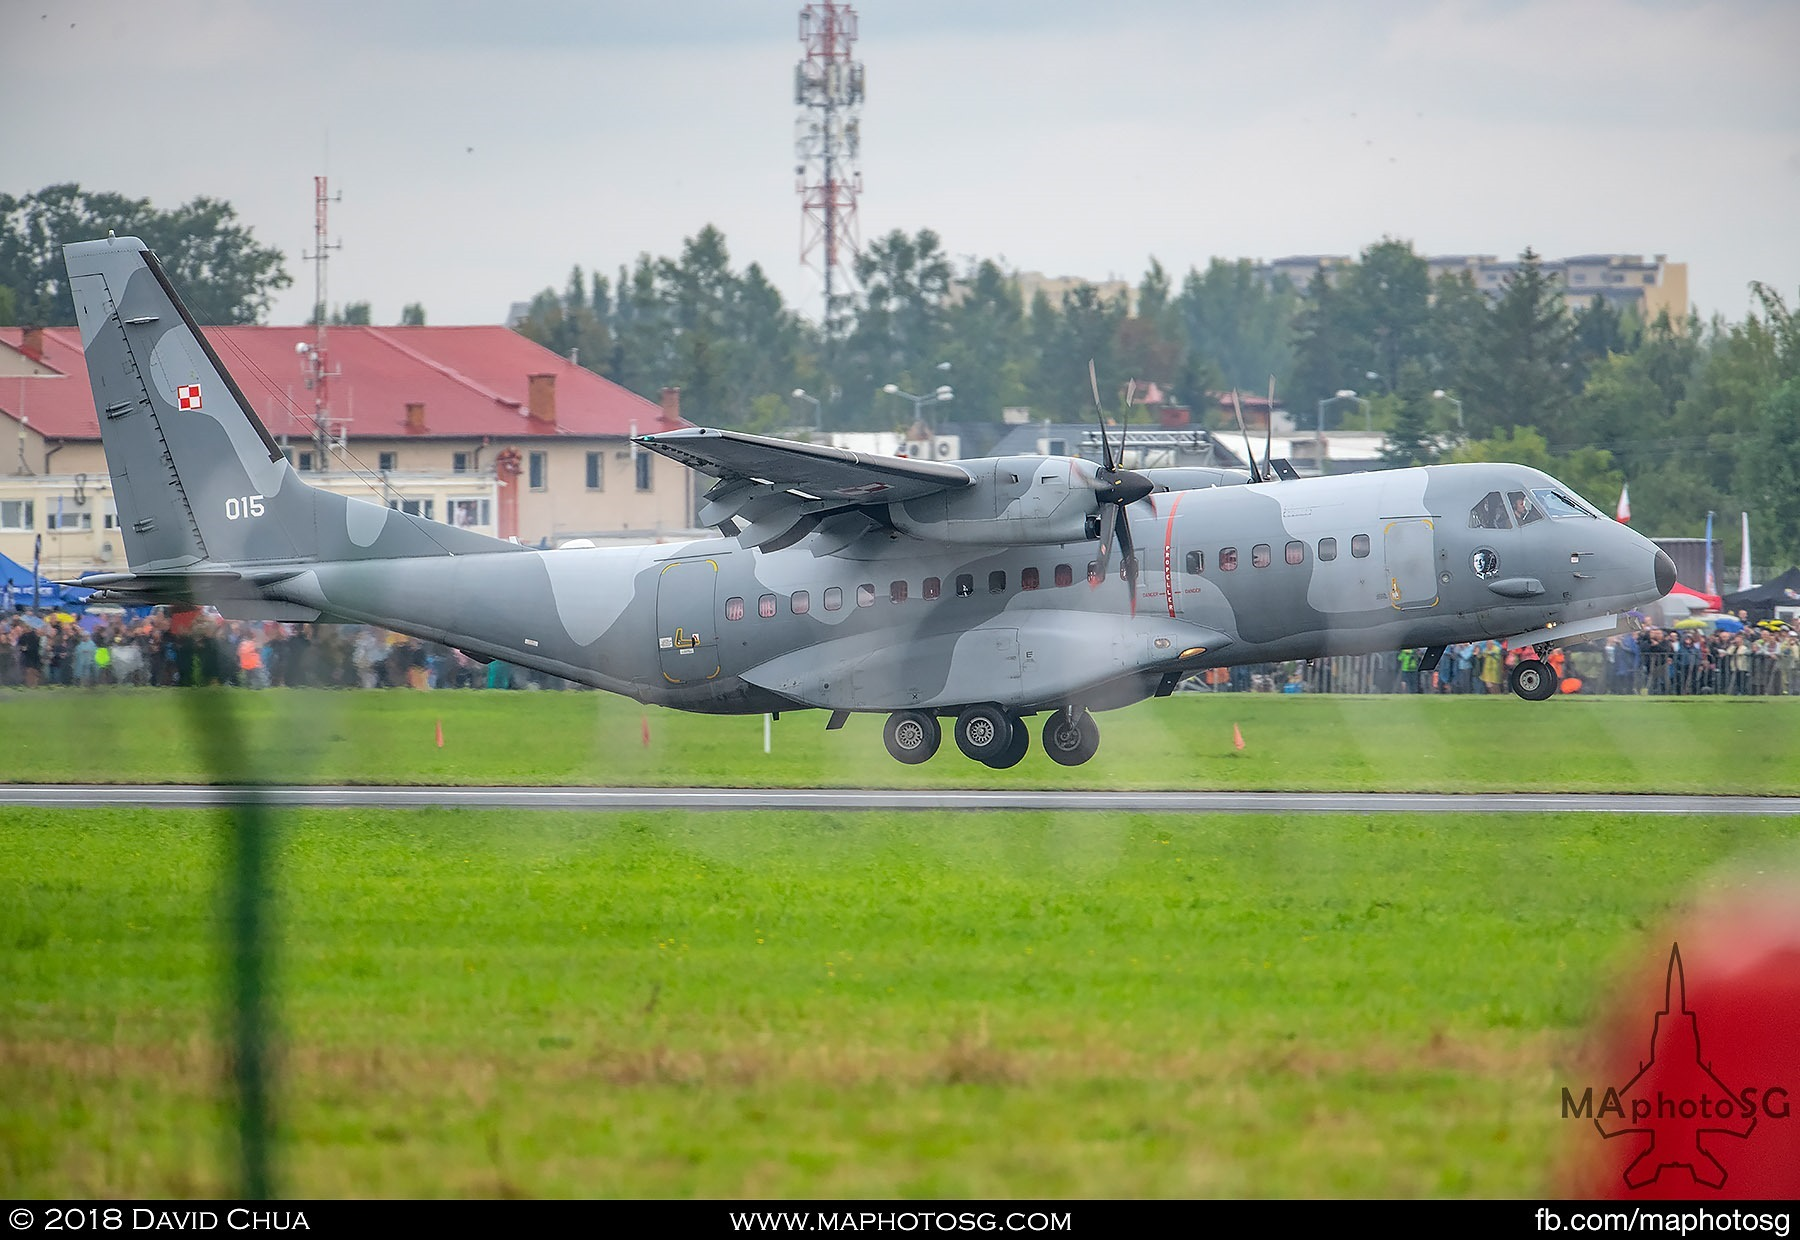 27. Polish Air Force Casa C295M takes off in front of the packed crowd